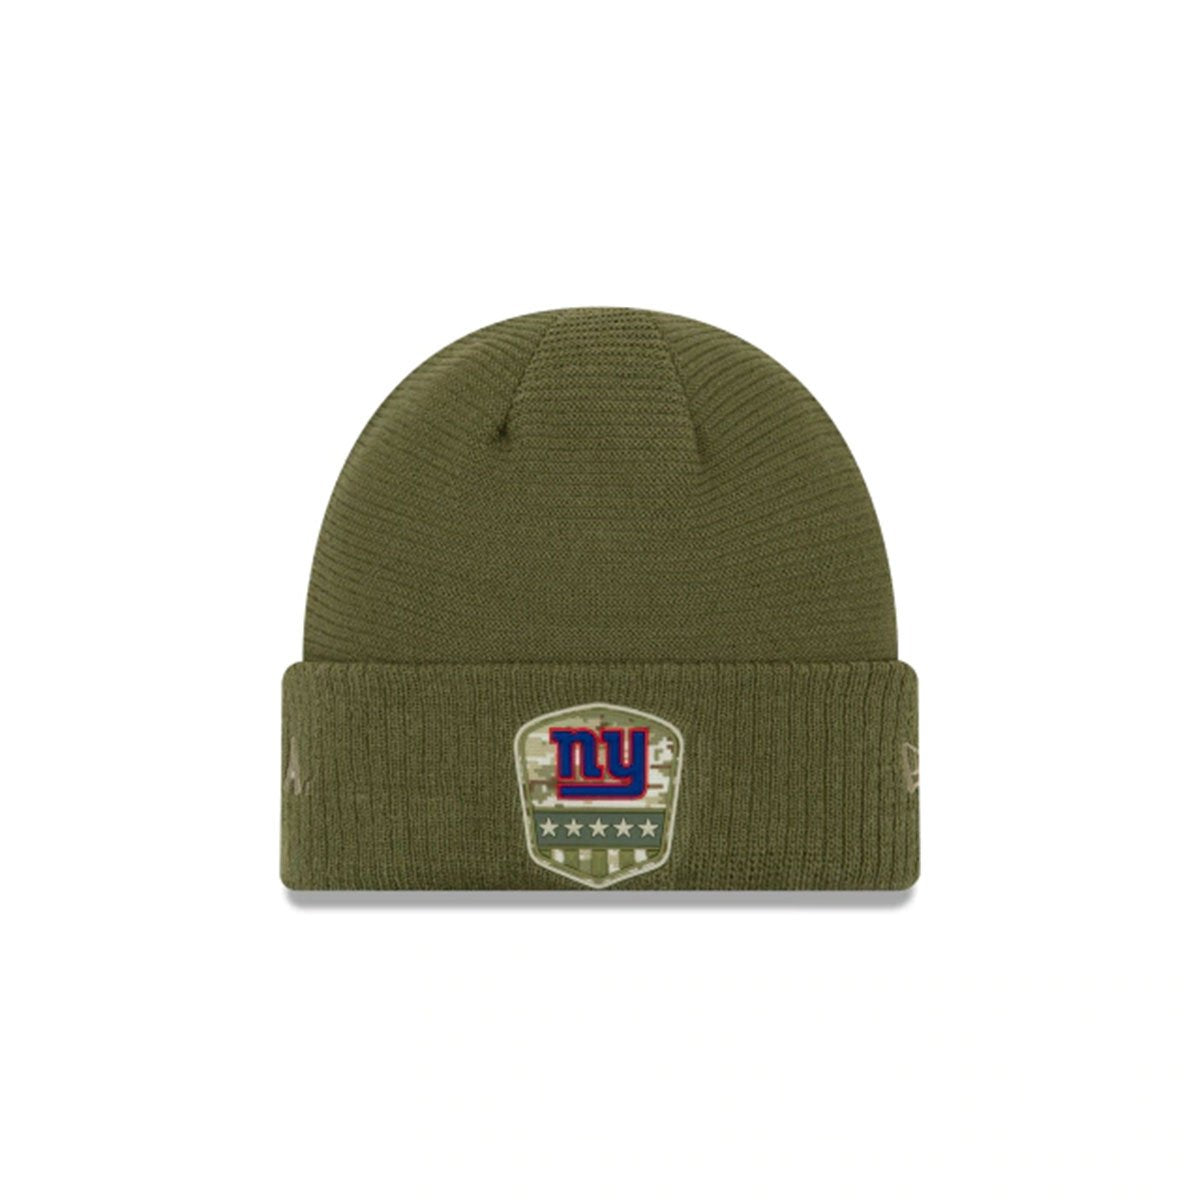 NEW YORK GIANTS SALUTE TO SERVICE CUFF KNIT GREEN/BLUE